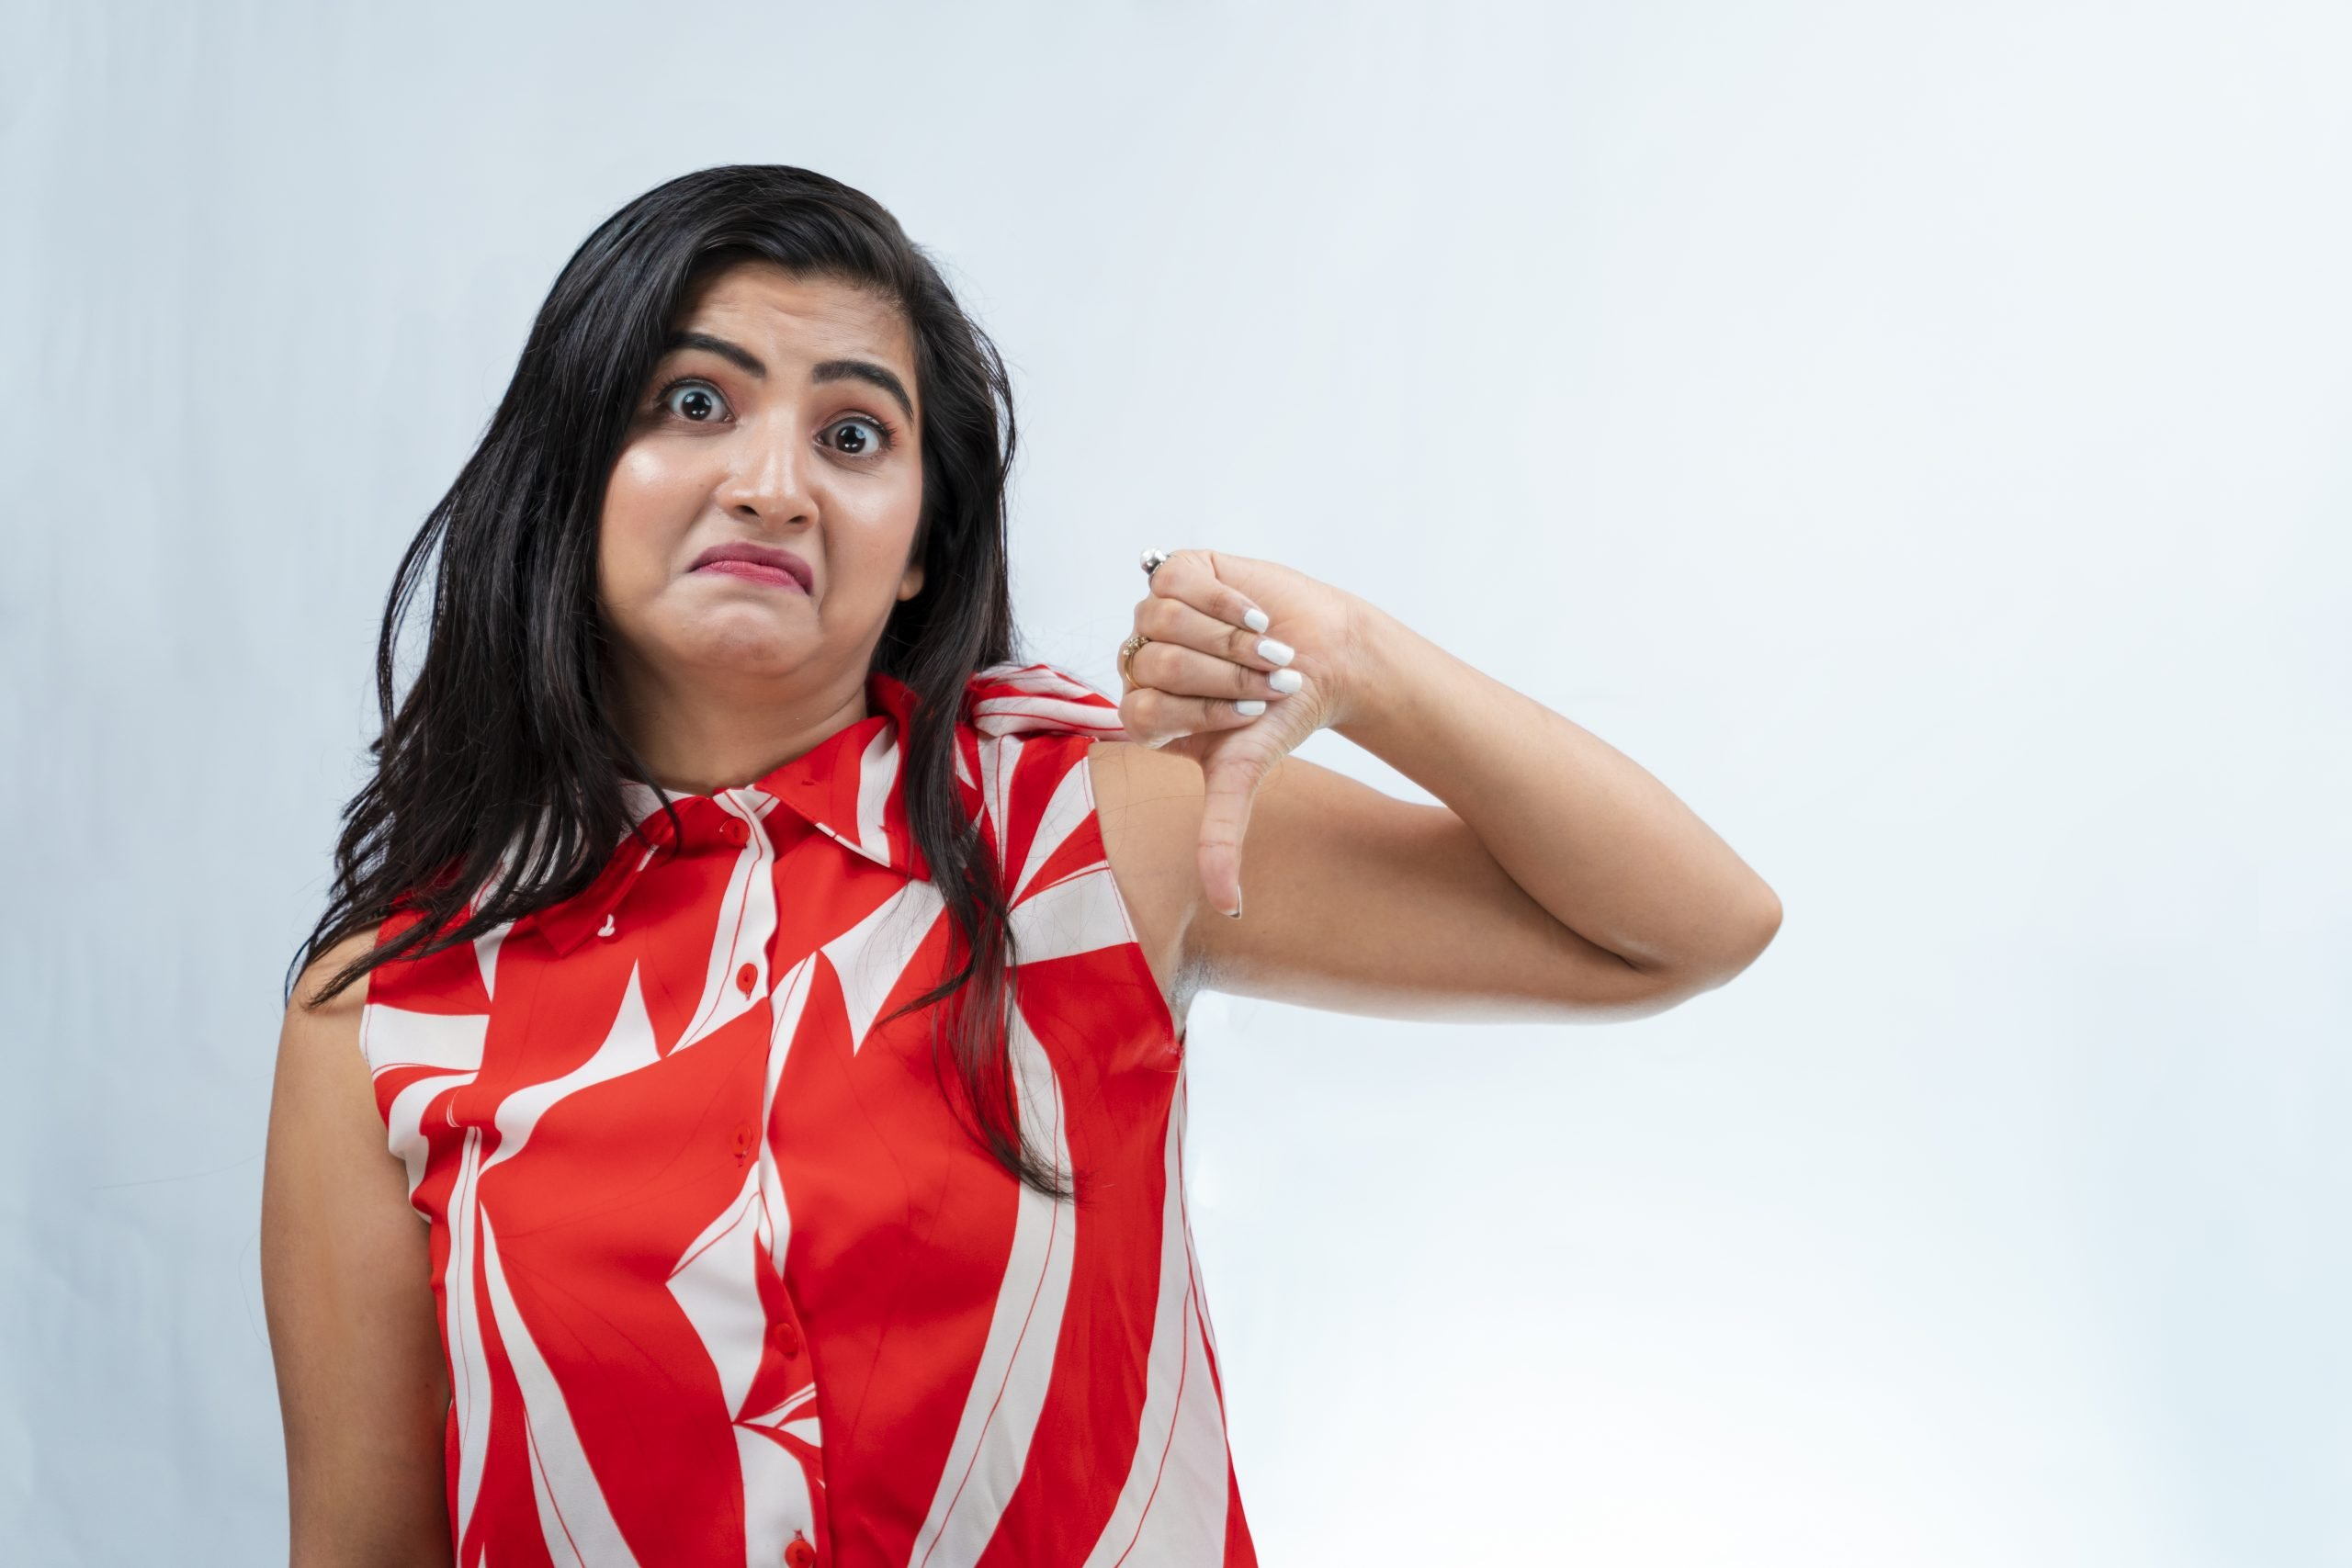 Indian girl doing thumbs down